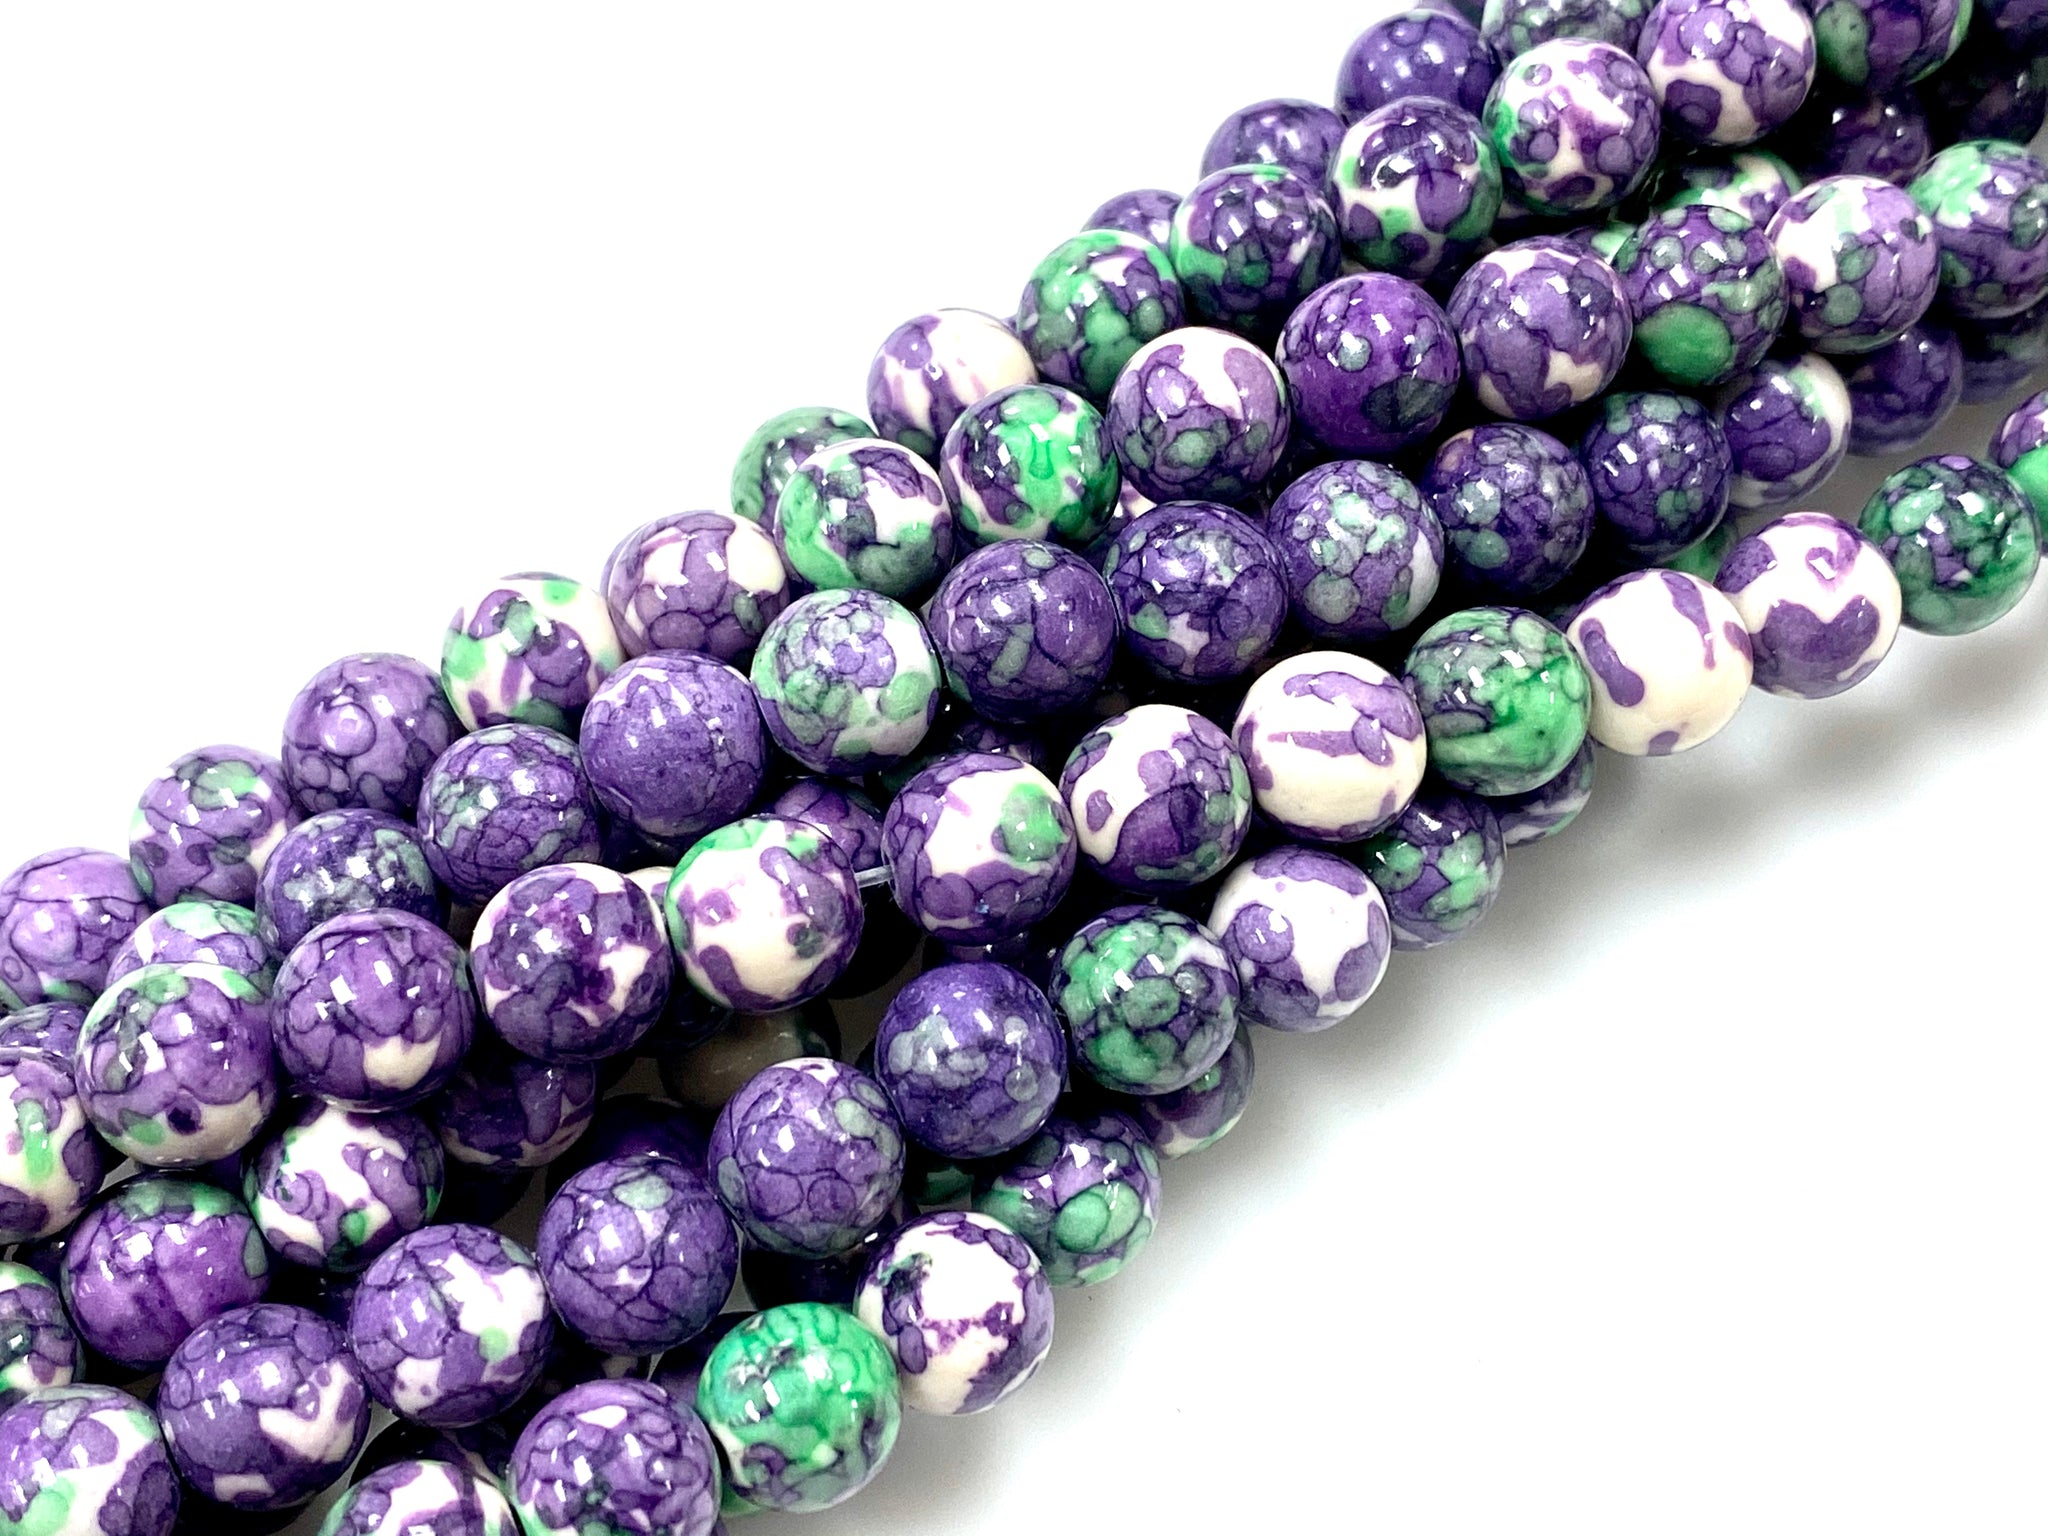 Natural Purple Rain Jasper Beads / Faceted Round Shape Beads / Healing Energy Stone Beads / 8mm 2 Strand Gemstone Beads